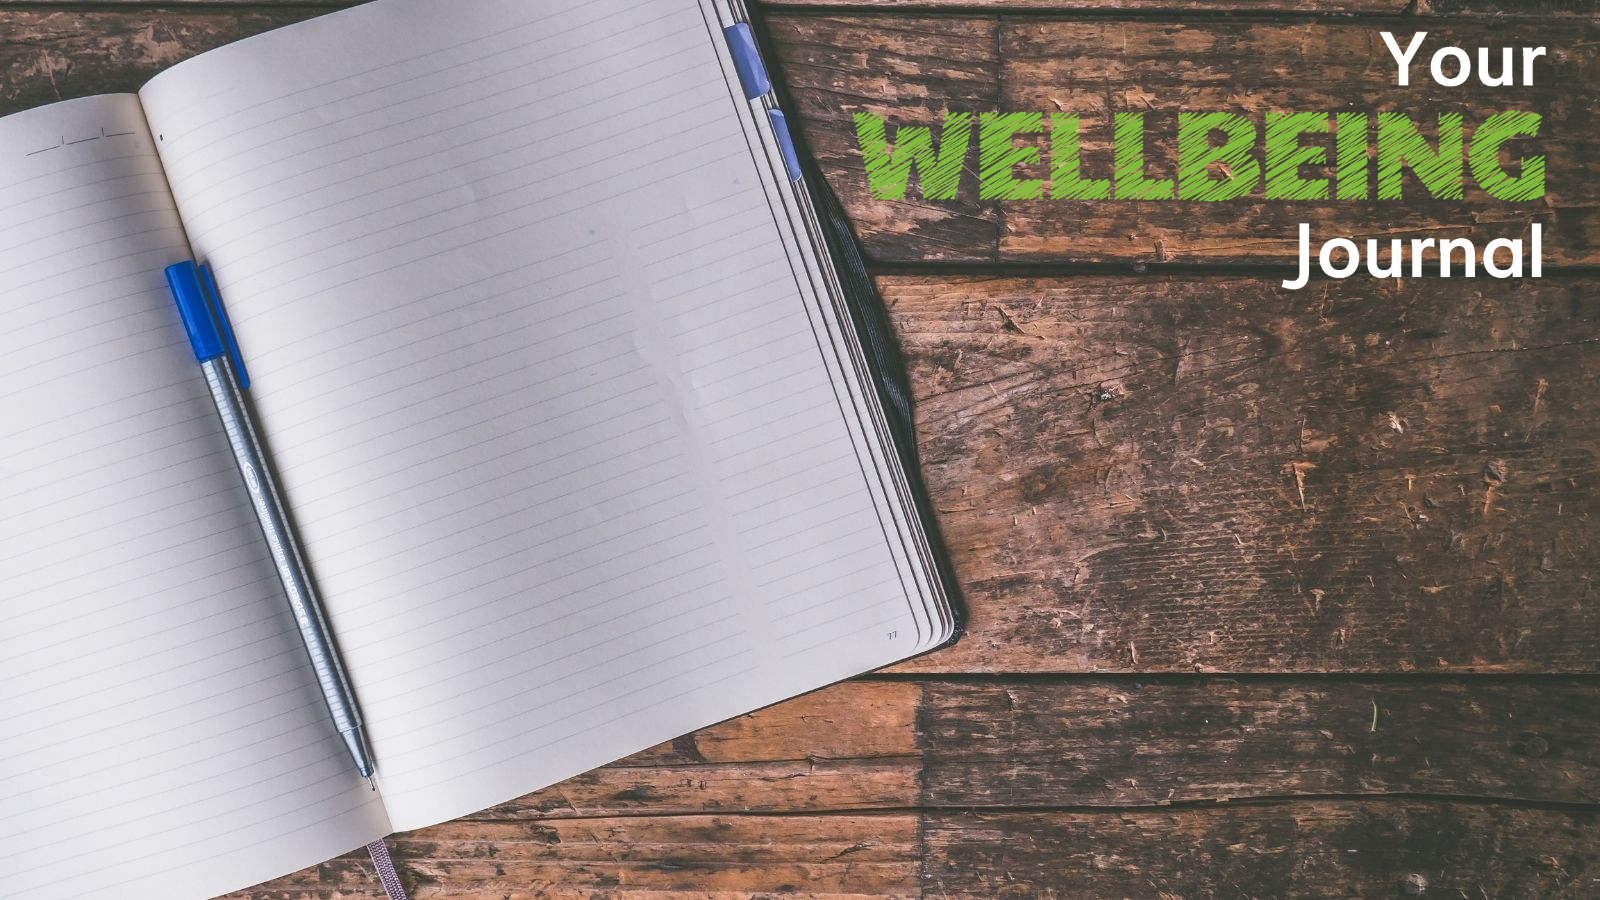 Your Wellbeing Journal